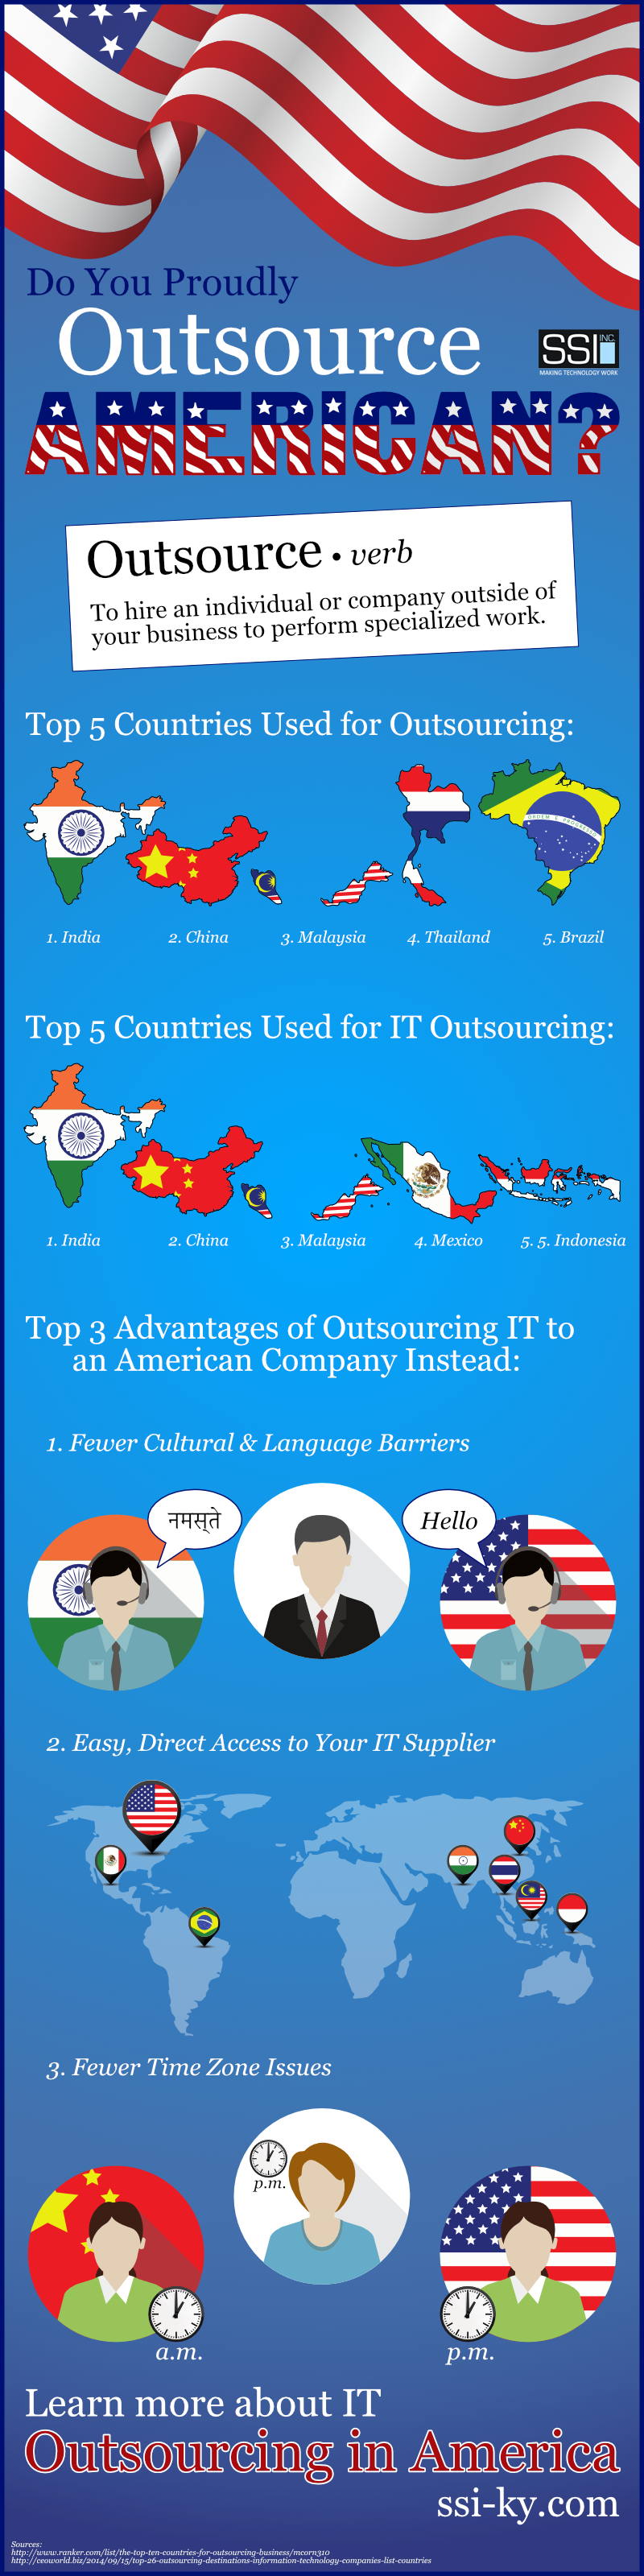 Proud to Outsource American